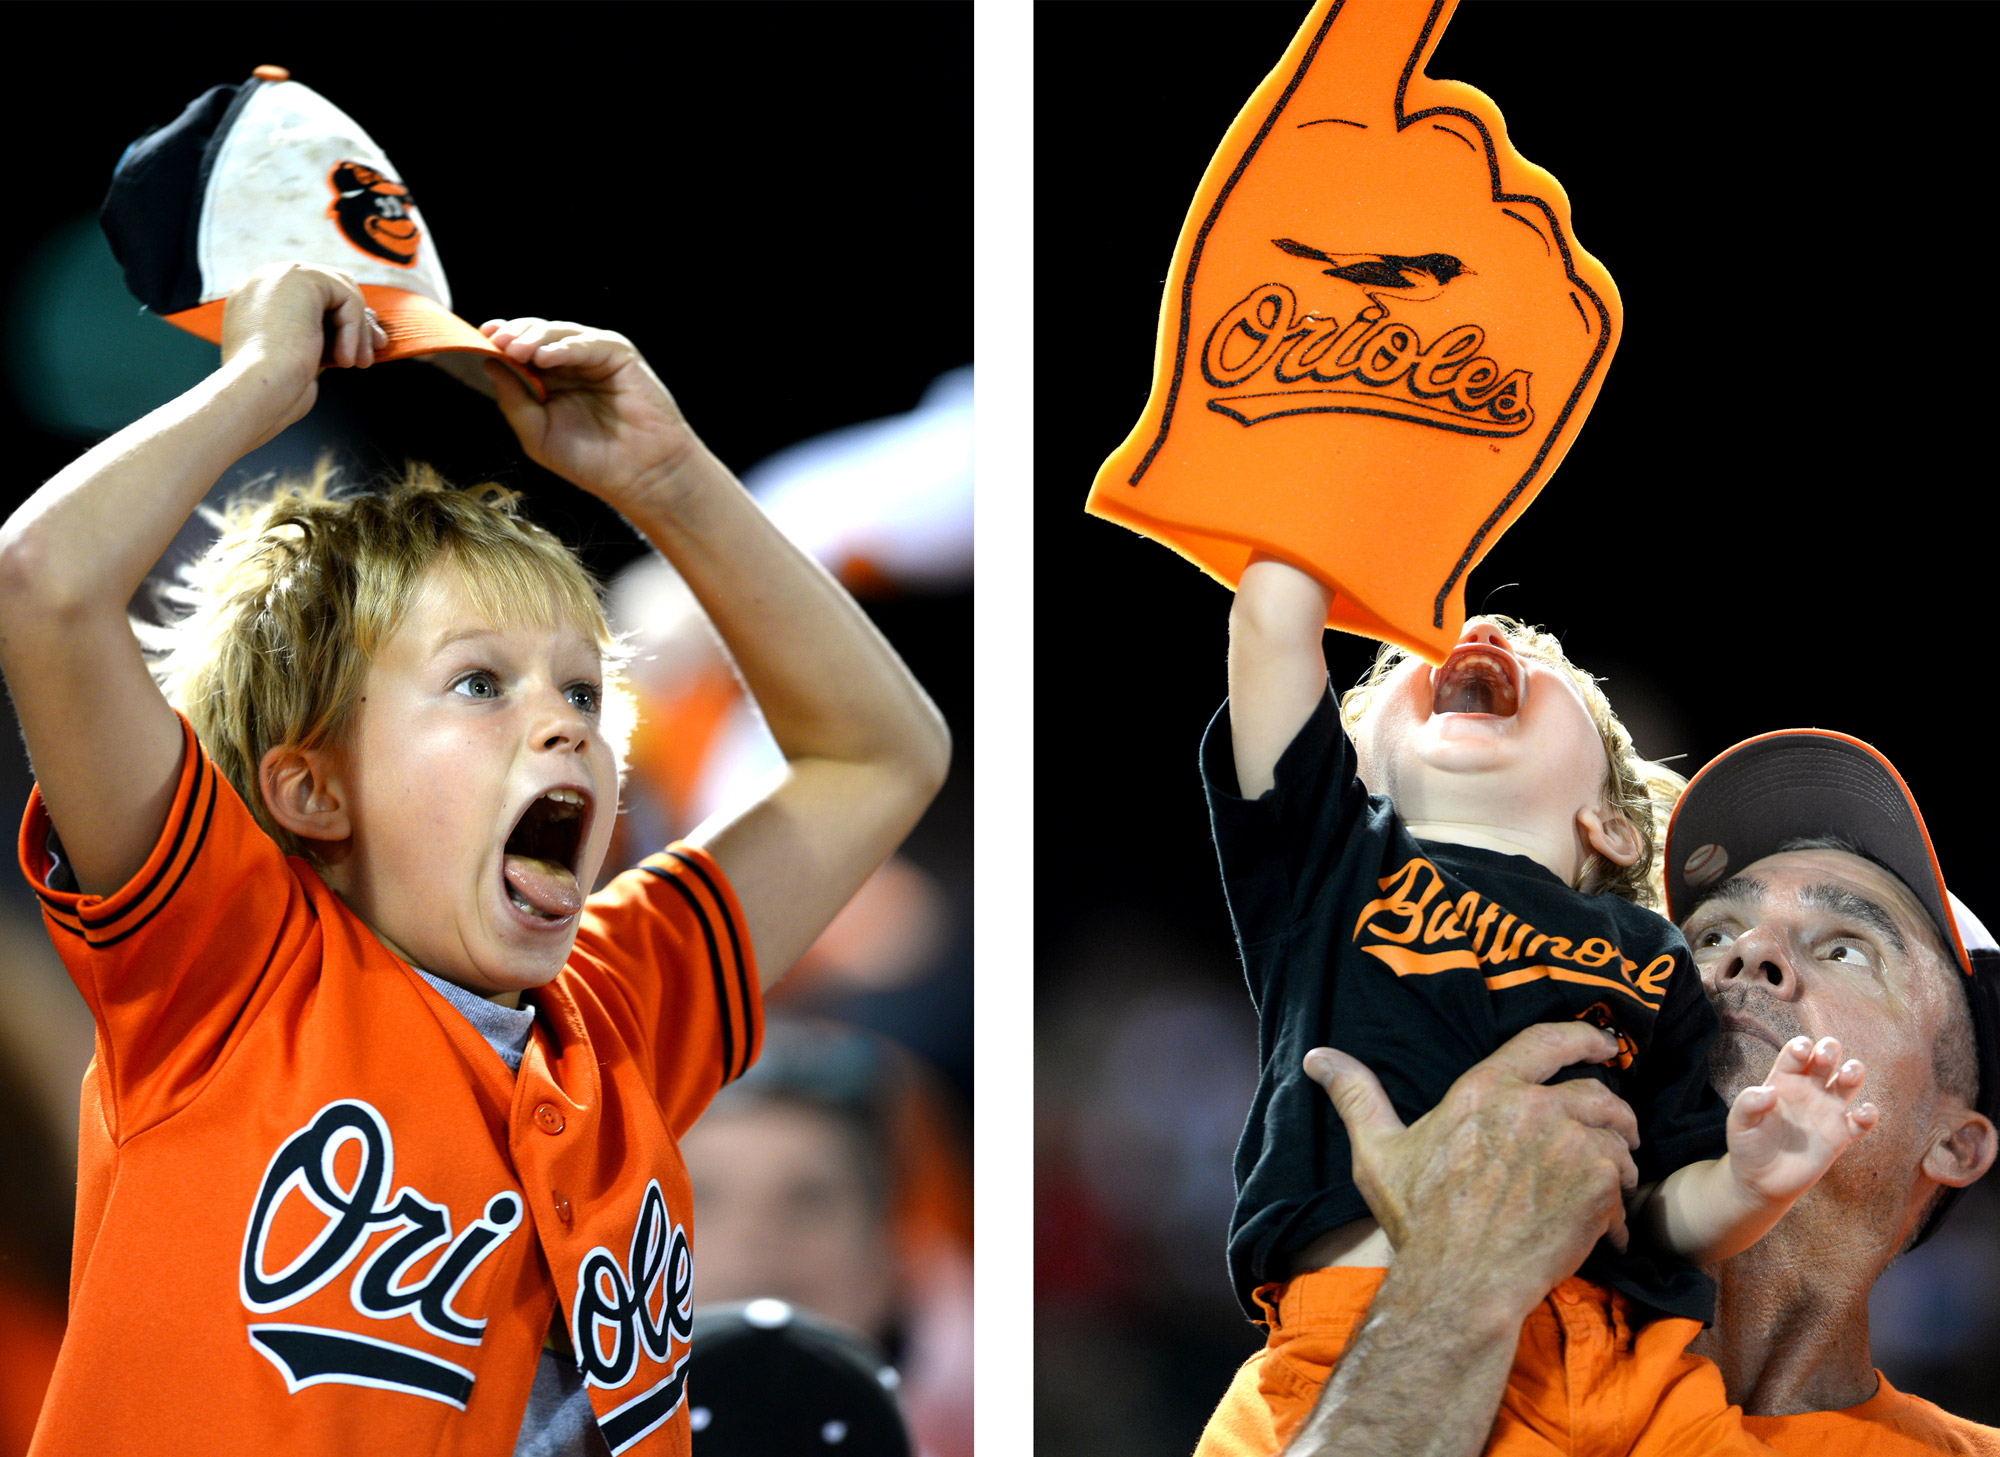 """Baltimore Orioles Fans get excited during the """"Fan of the Game"""" contest during a home game at Oriole Park at Camden Yards in Baltimore, Md."""